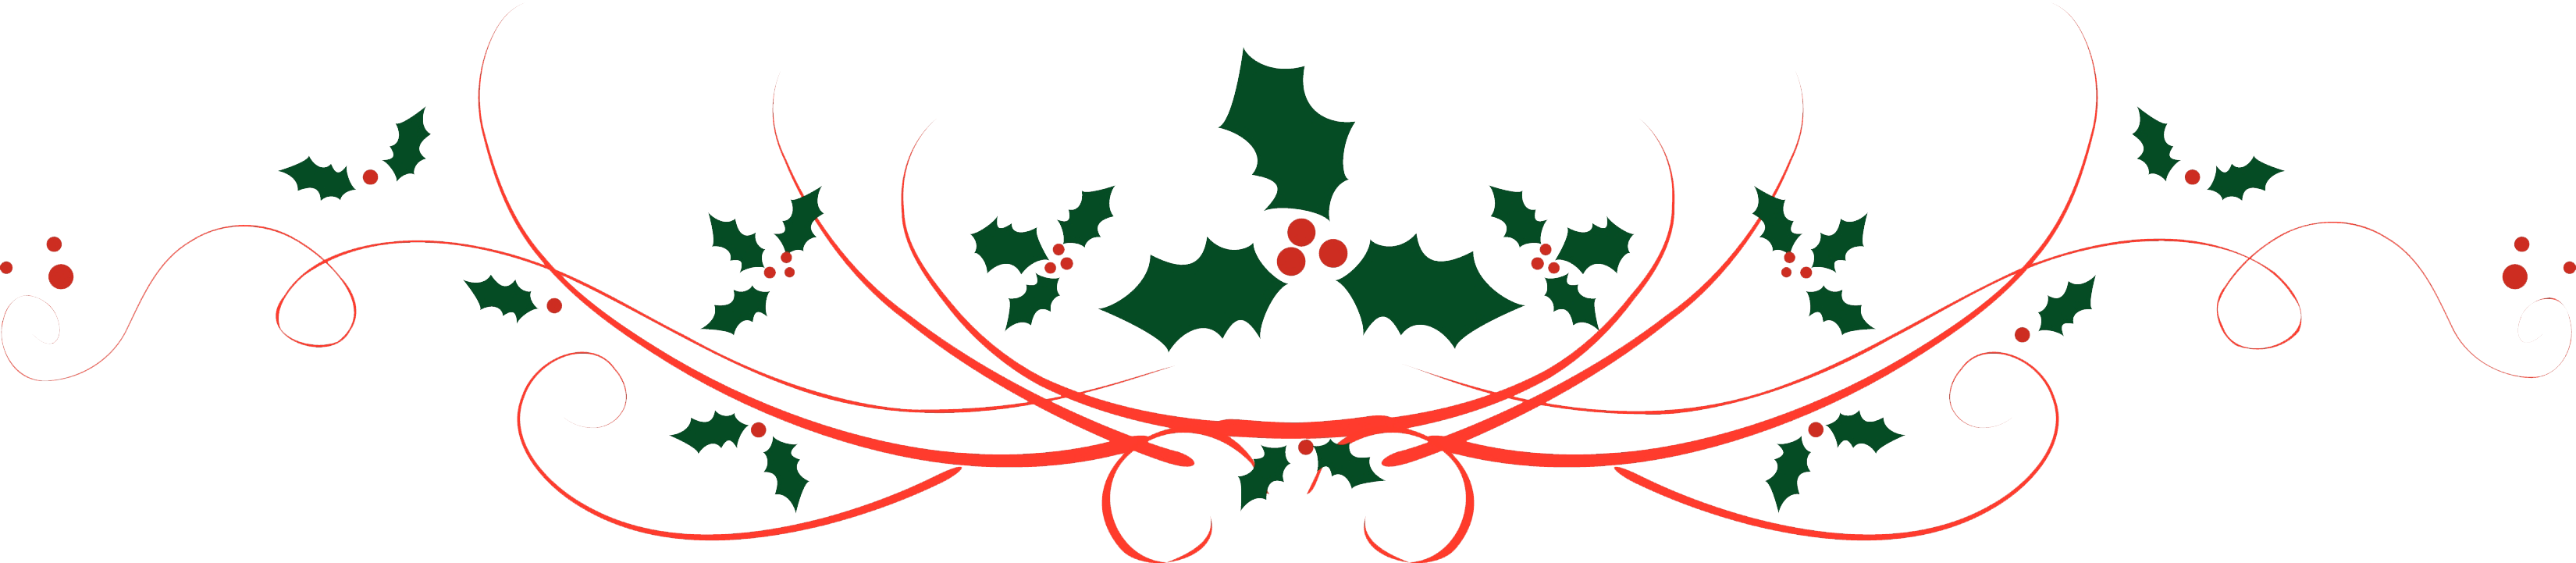 Christmas Dividers PNG Transparent.